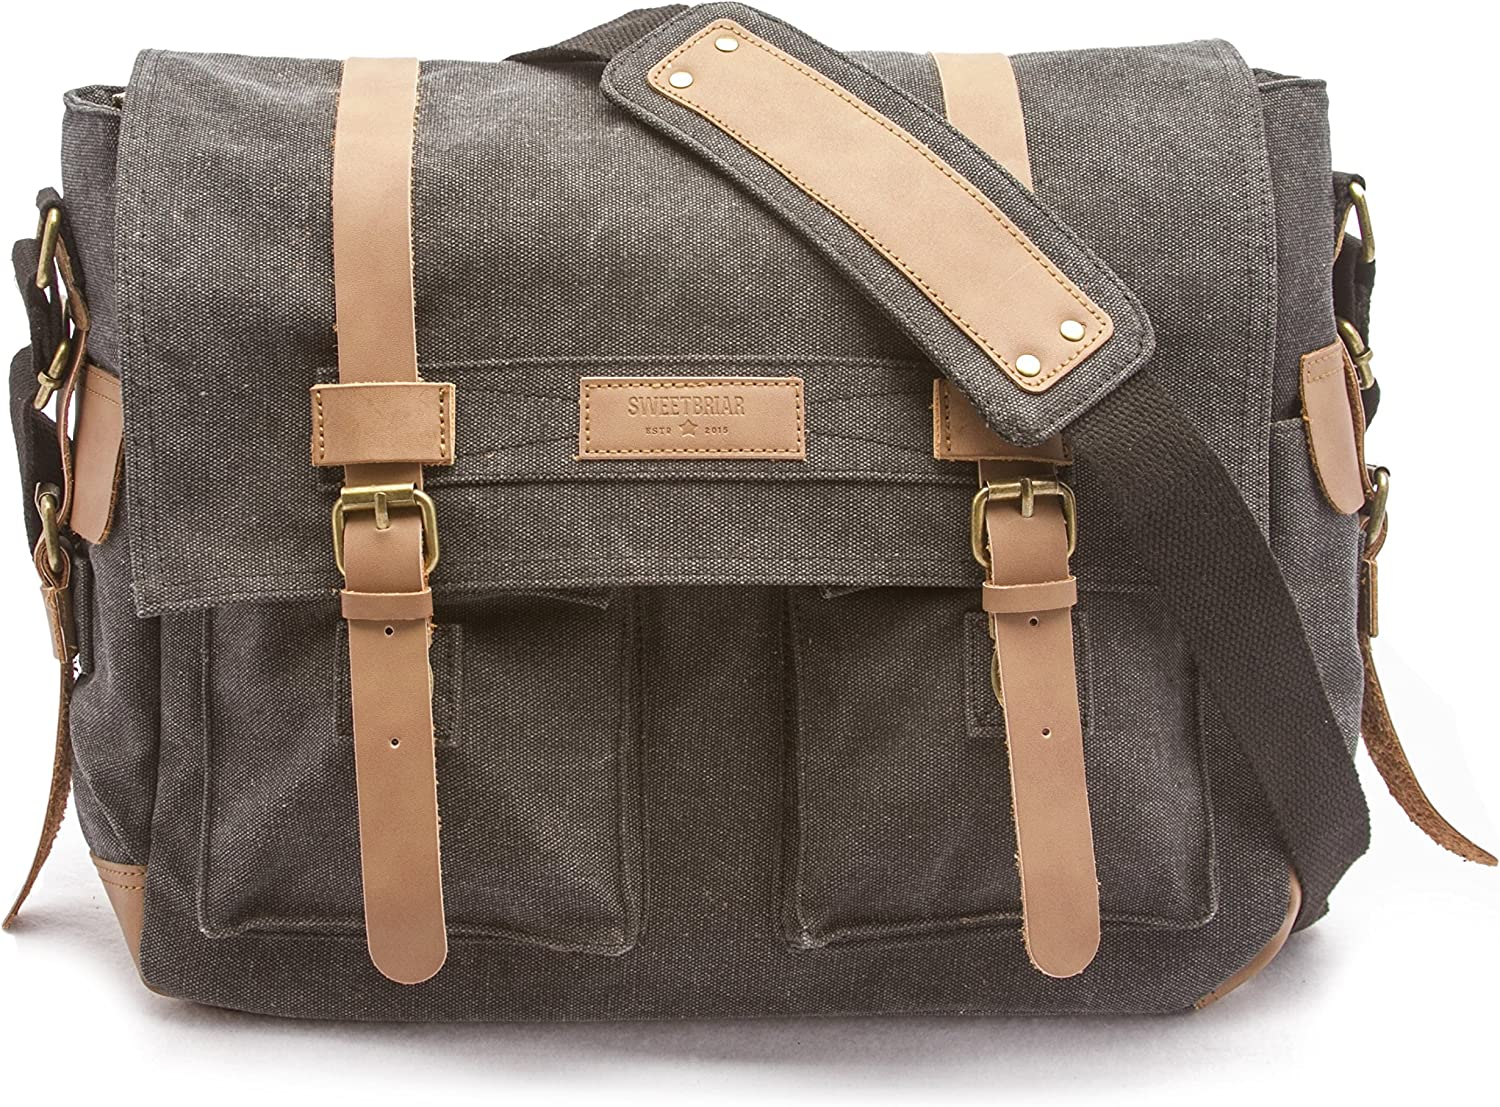 Sweetbriar Classic Laptop Messenger Bag, Black - Canvas Pack Designed to Protect Laptops up to 13 Inches